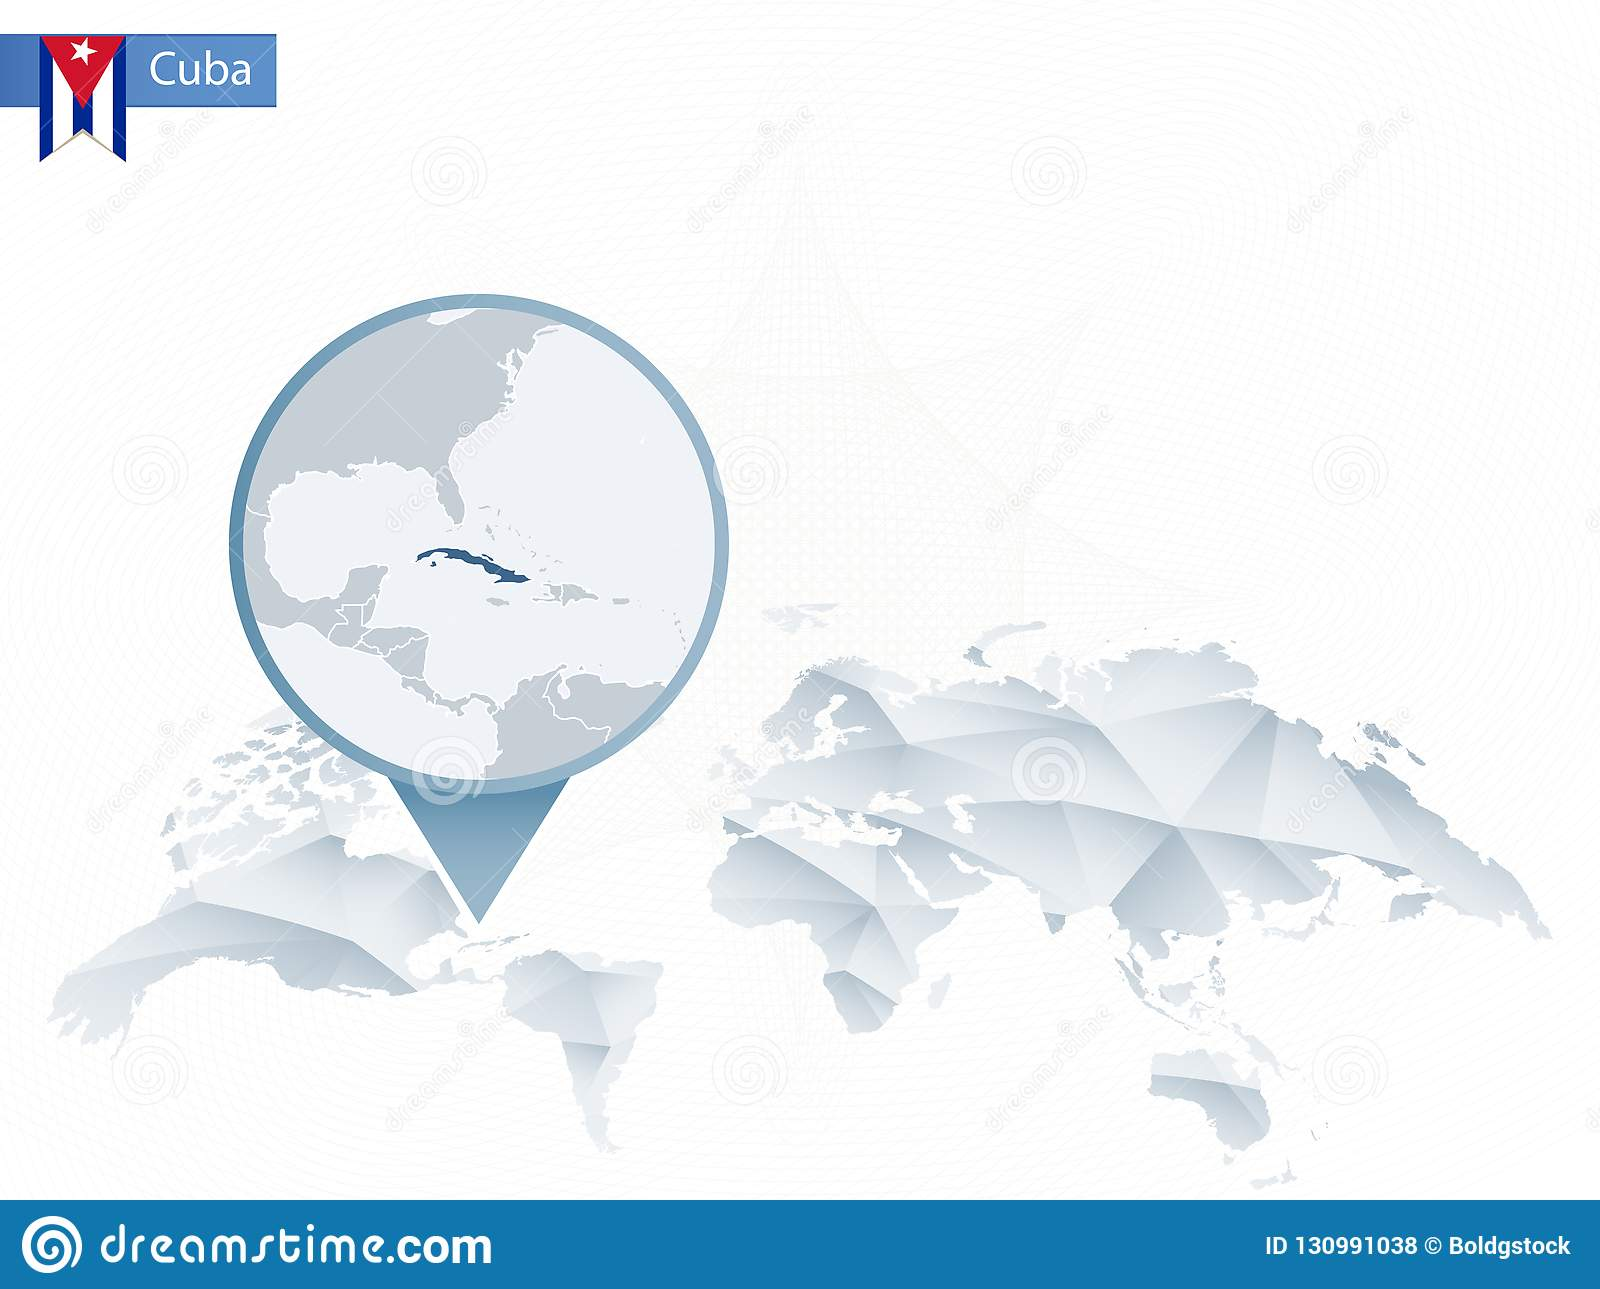 Abstract Rounded World Map With Pinned Detailed Cuba Map. Stock ...